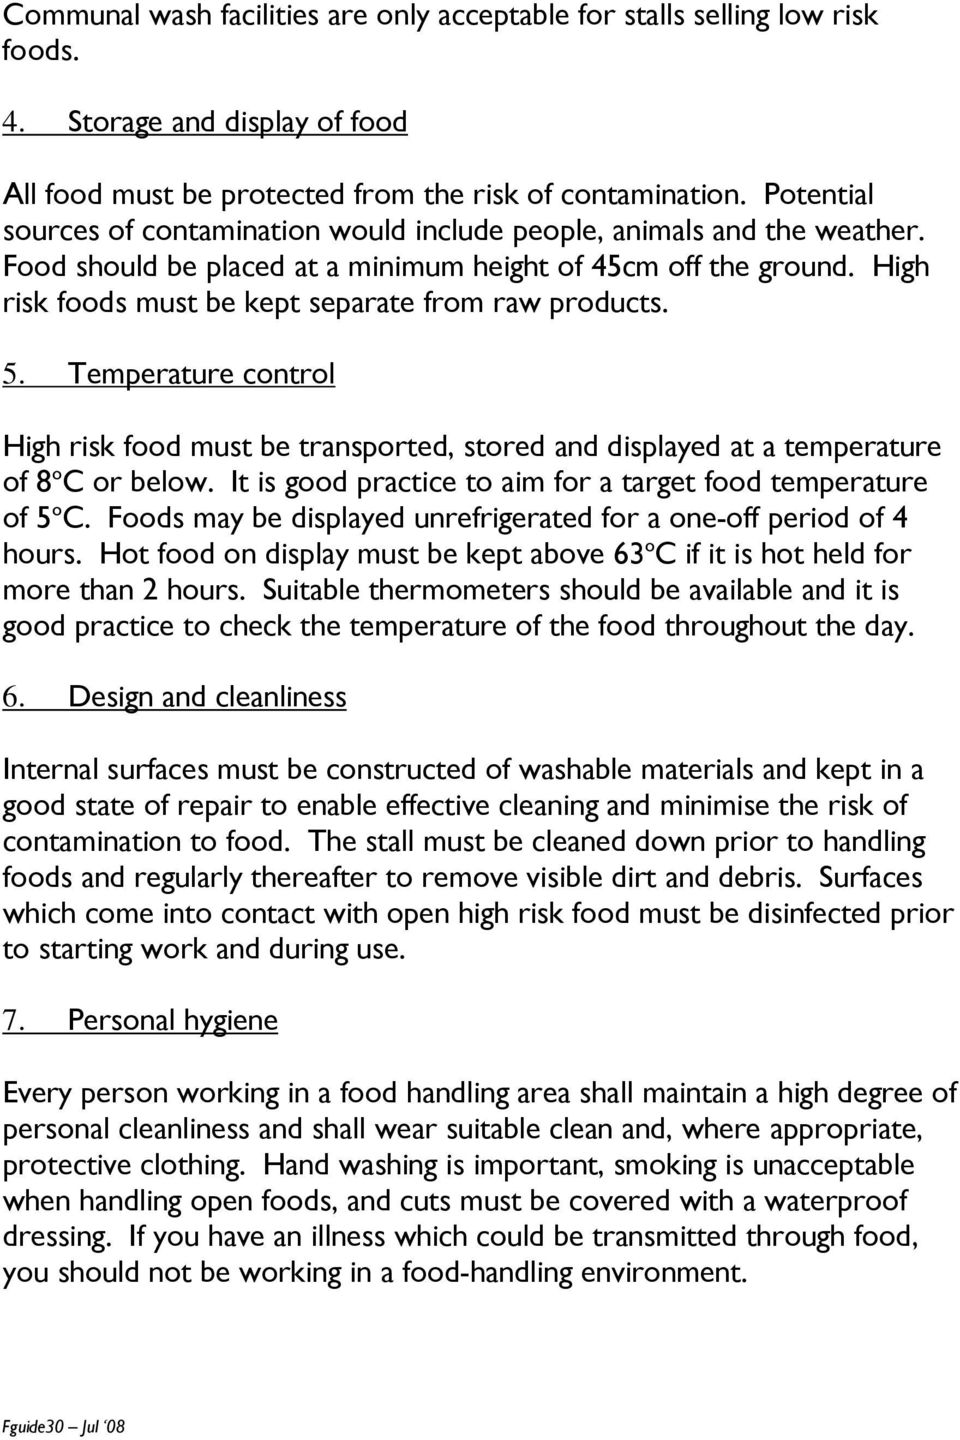 High risk foods must be kept separate from raw products. 5. Temperature control High risk food must be transported, stored and displayed at a temperature of 8 o C or below.